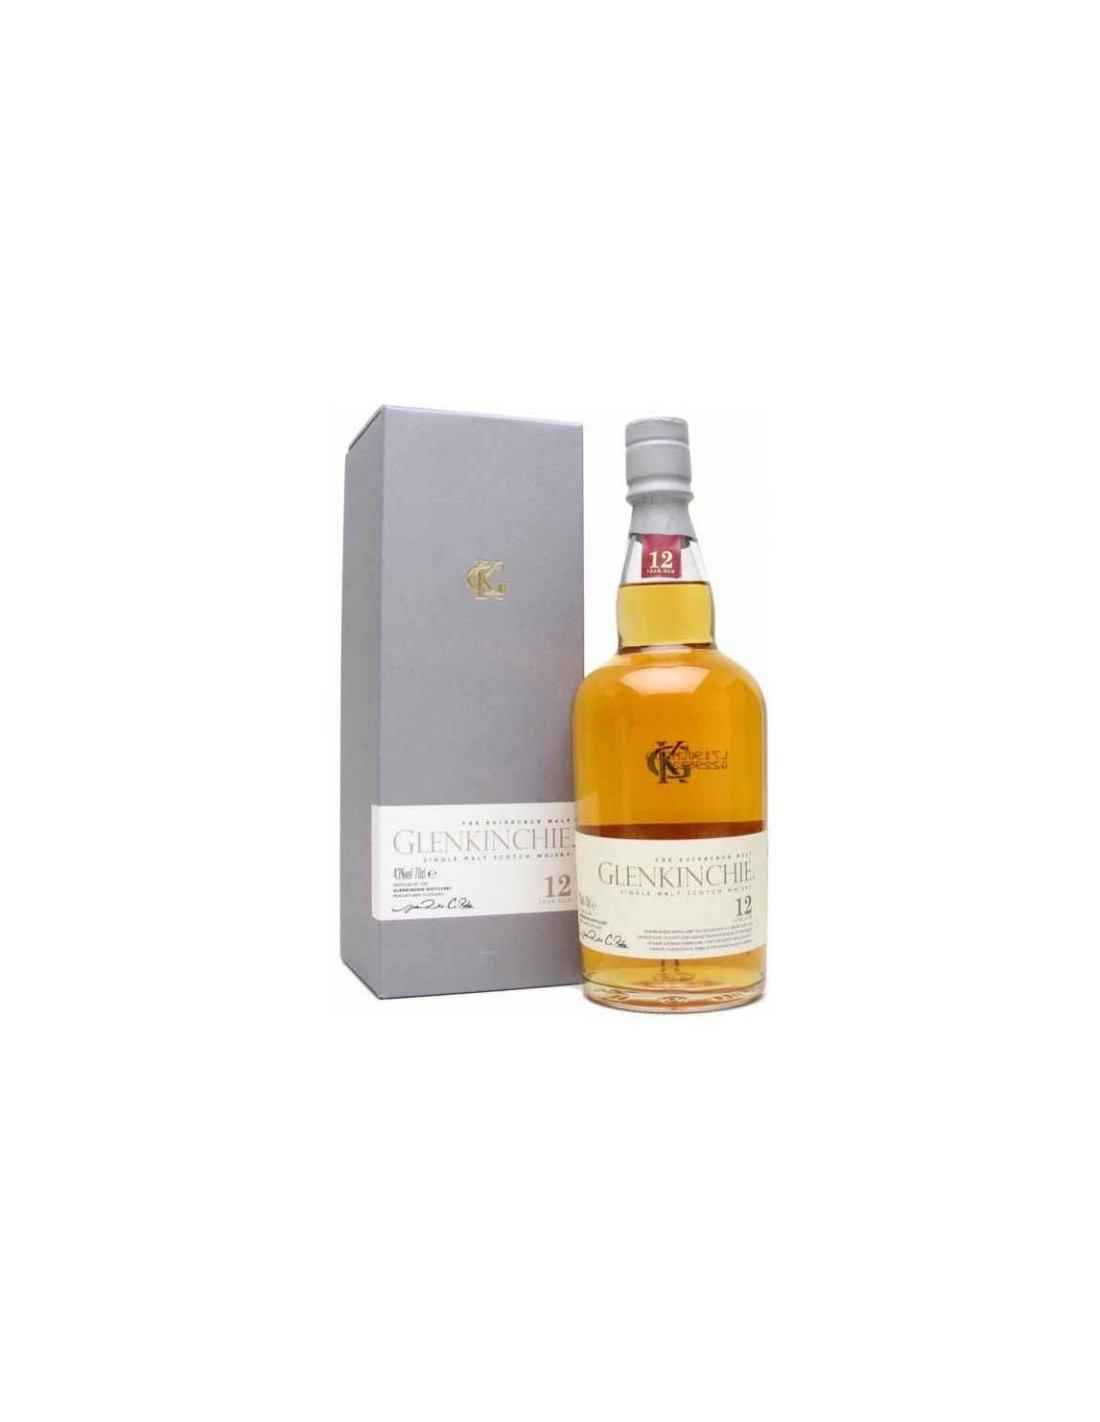 Whisky Glenkinchie, 12 ani, 43% alc., 0.7L, Scotia